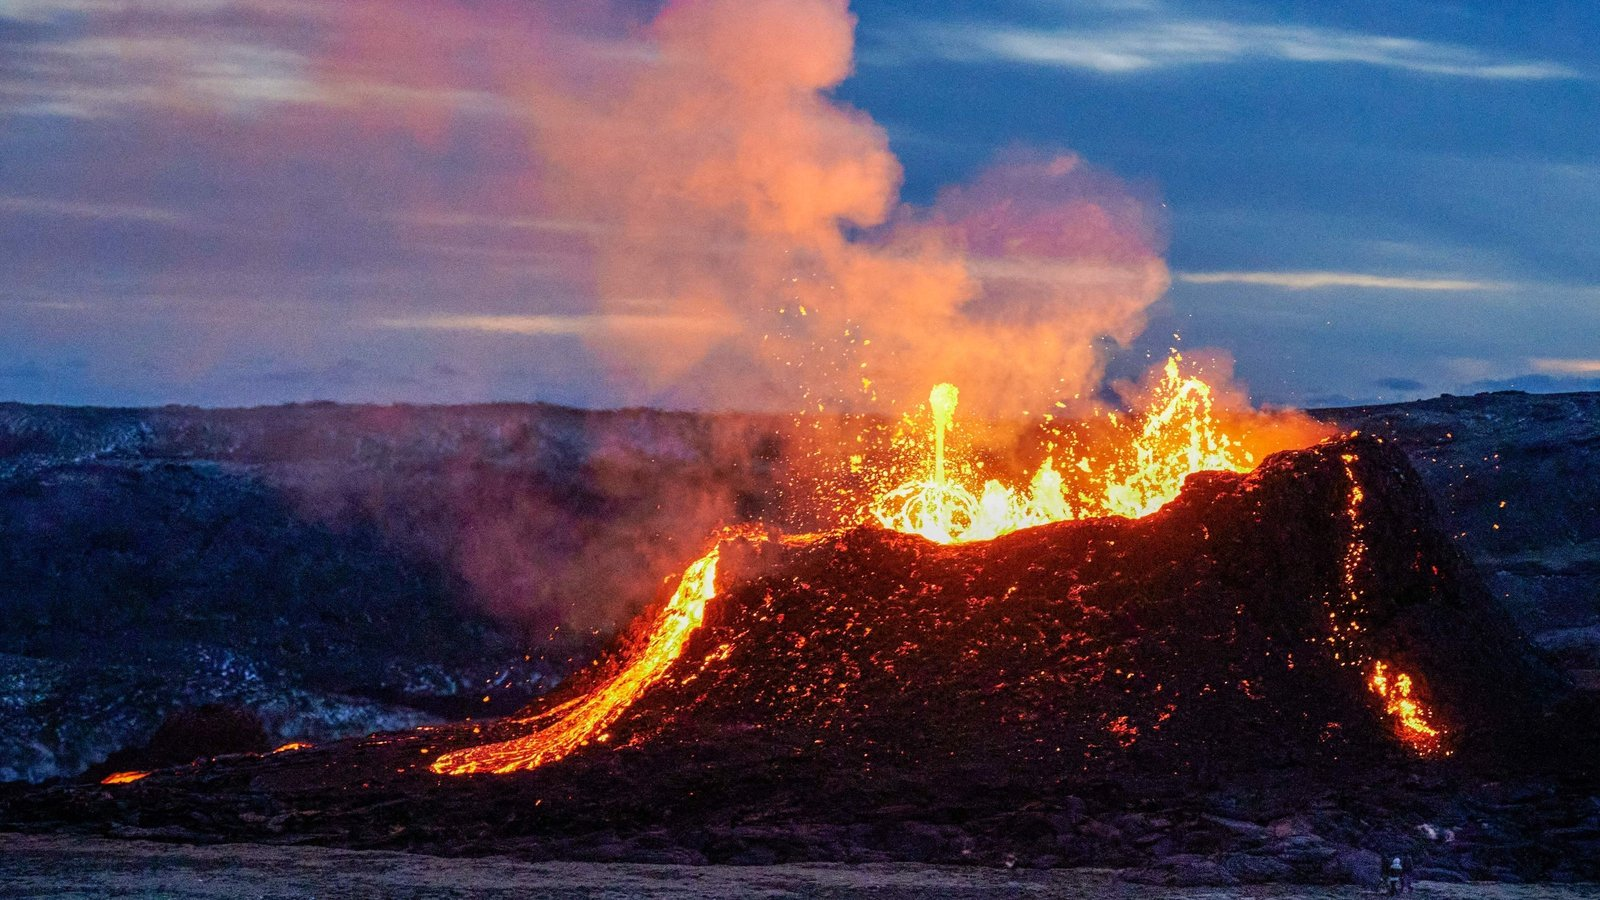 Icelandic volcano roars back to life after 6,000 years